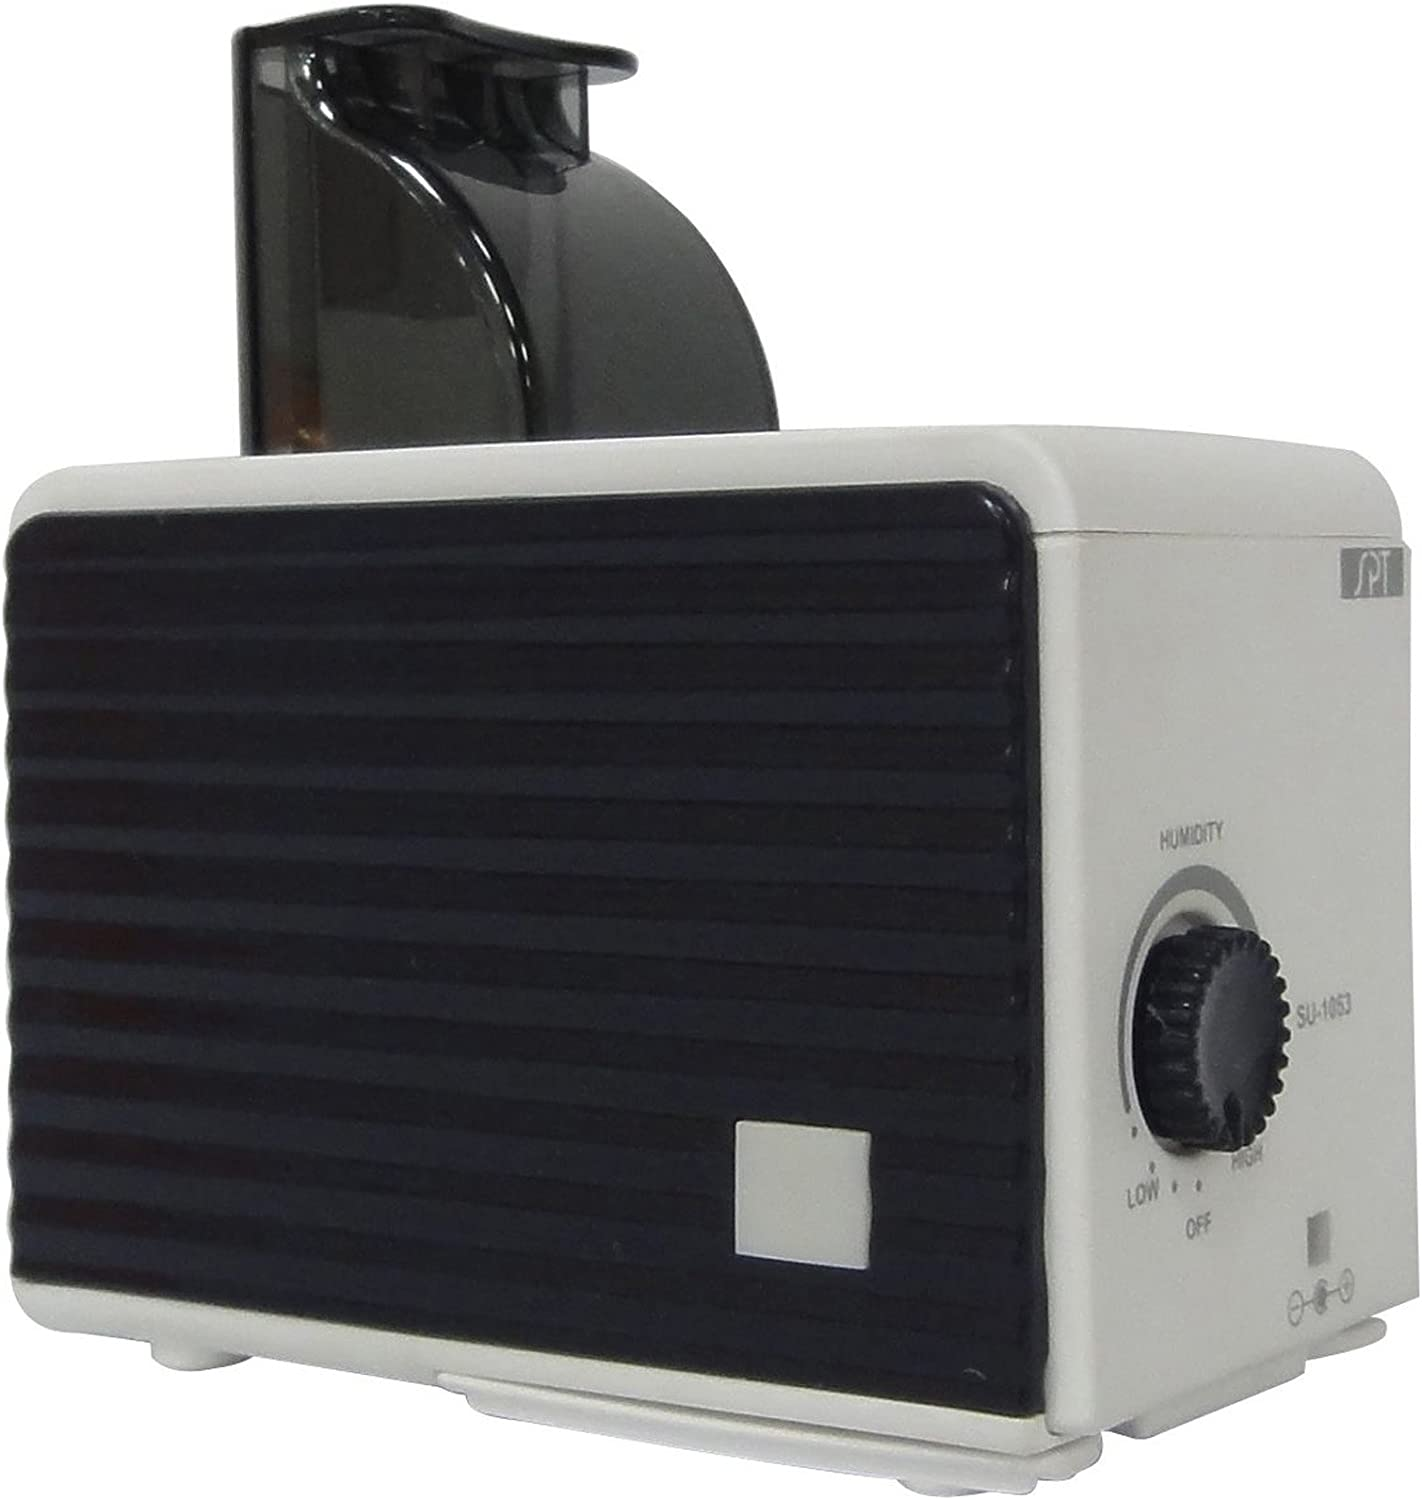 Manufacturer direct delivery Our shop OFFers the best service SPT SU-1053B: Personal Humidifier Black White